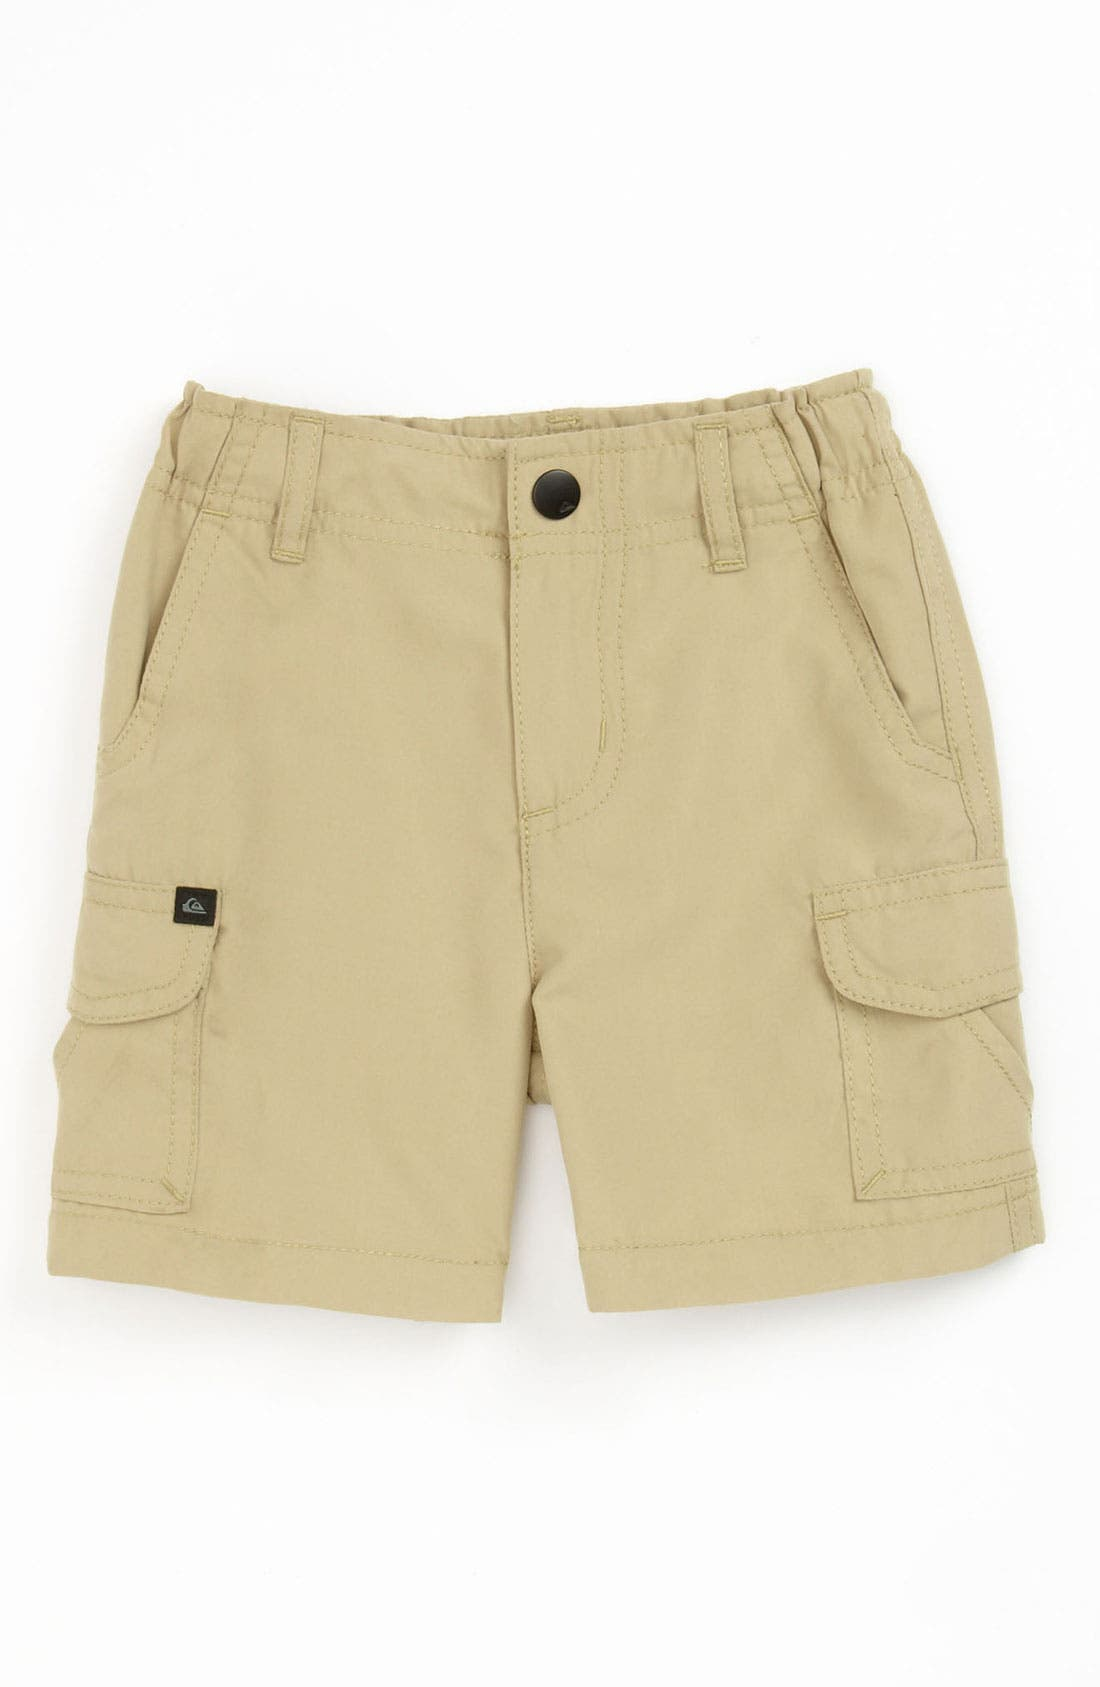 Alternate Image 1 Selected - Quiksilver 'Phofilled' Shorts (Infant)